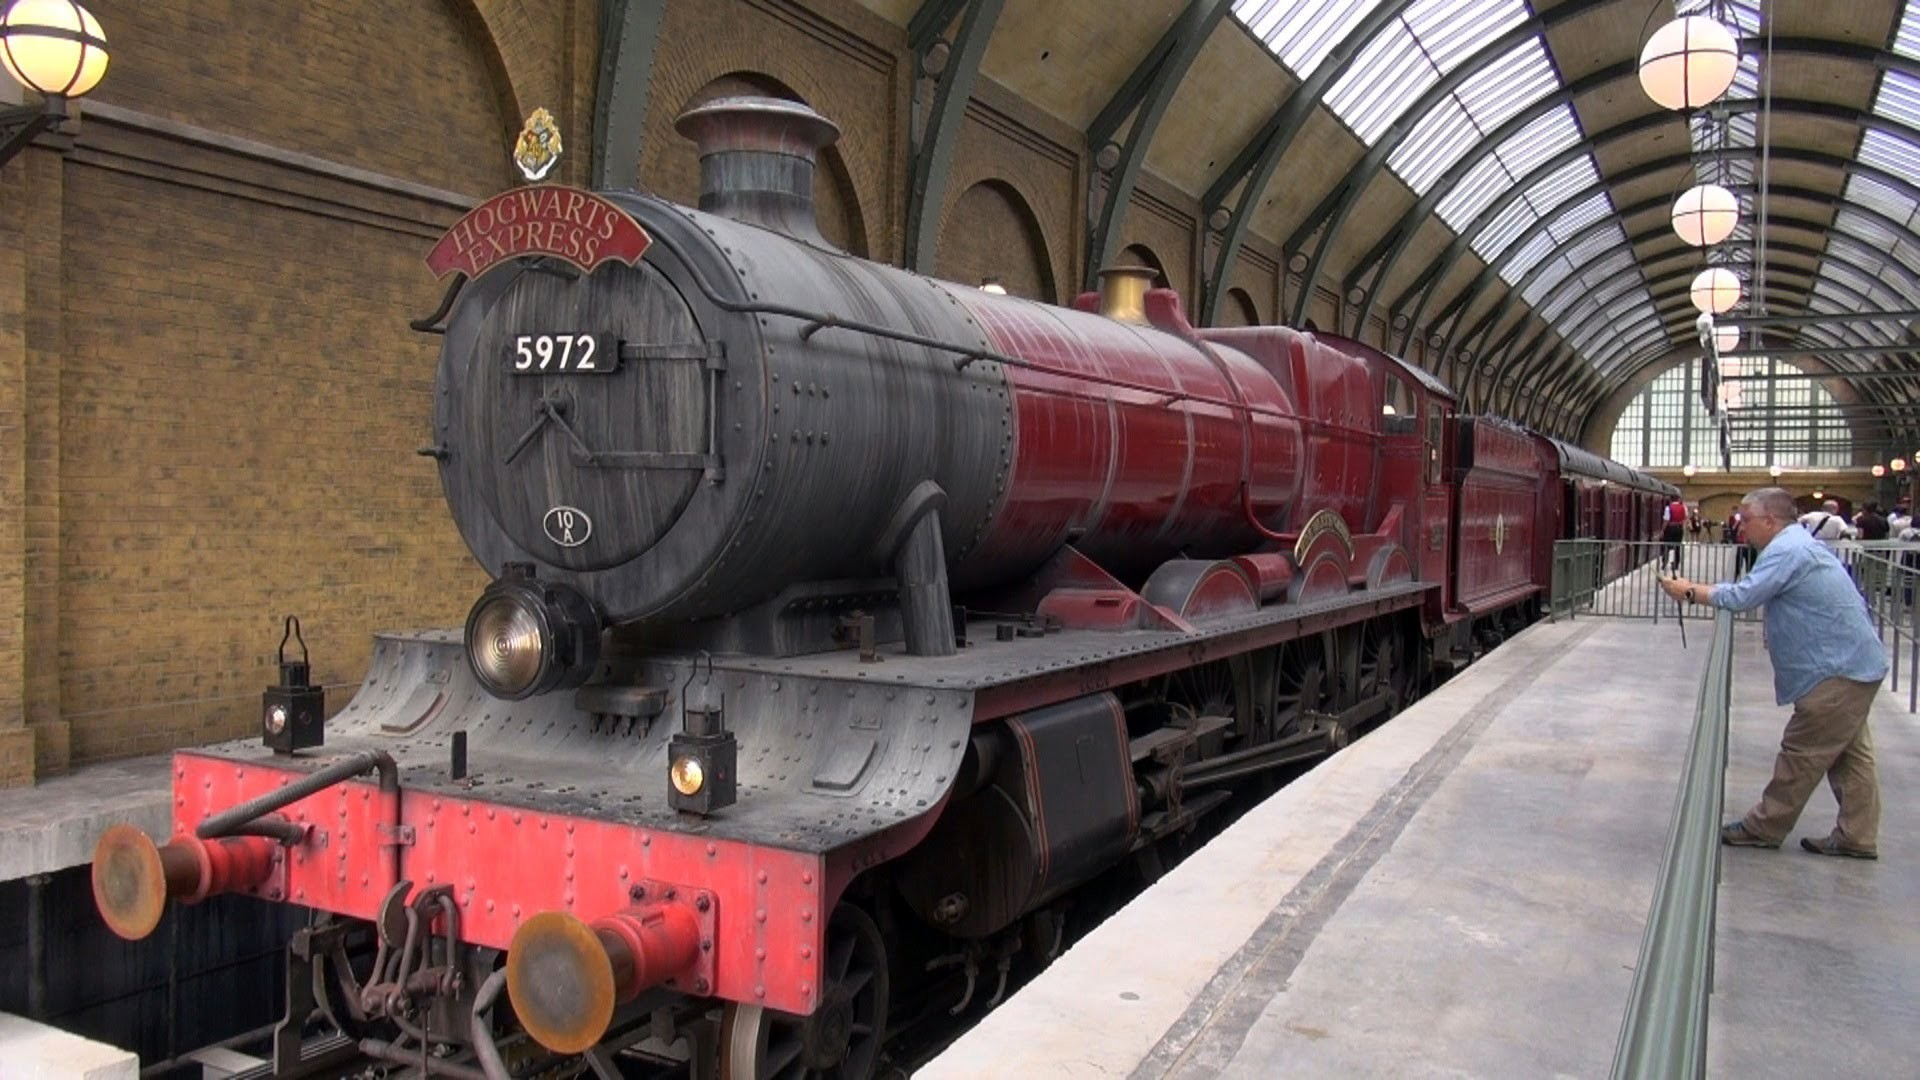 Res: 1920x1080, HOGWARTS EXPRESS Ride KING'S CROSS to HOGSMEADE - PANDAVISION Multi Angle  Journey - YouTube